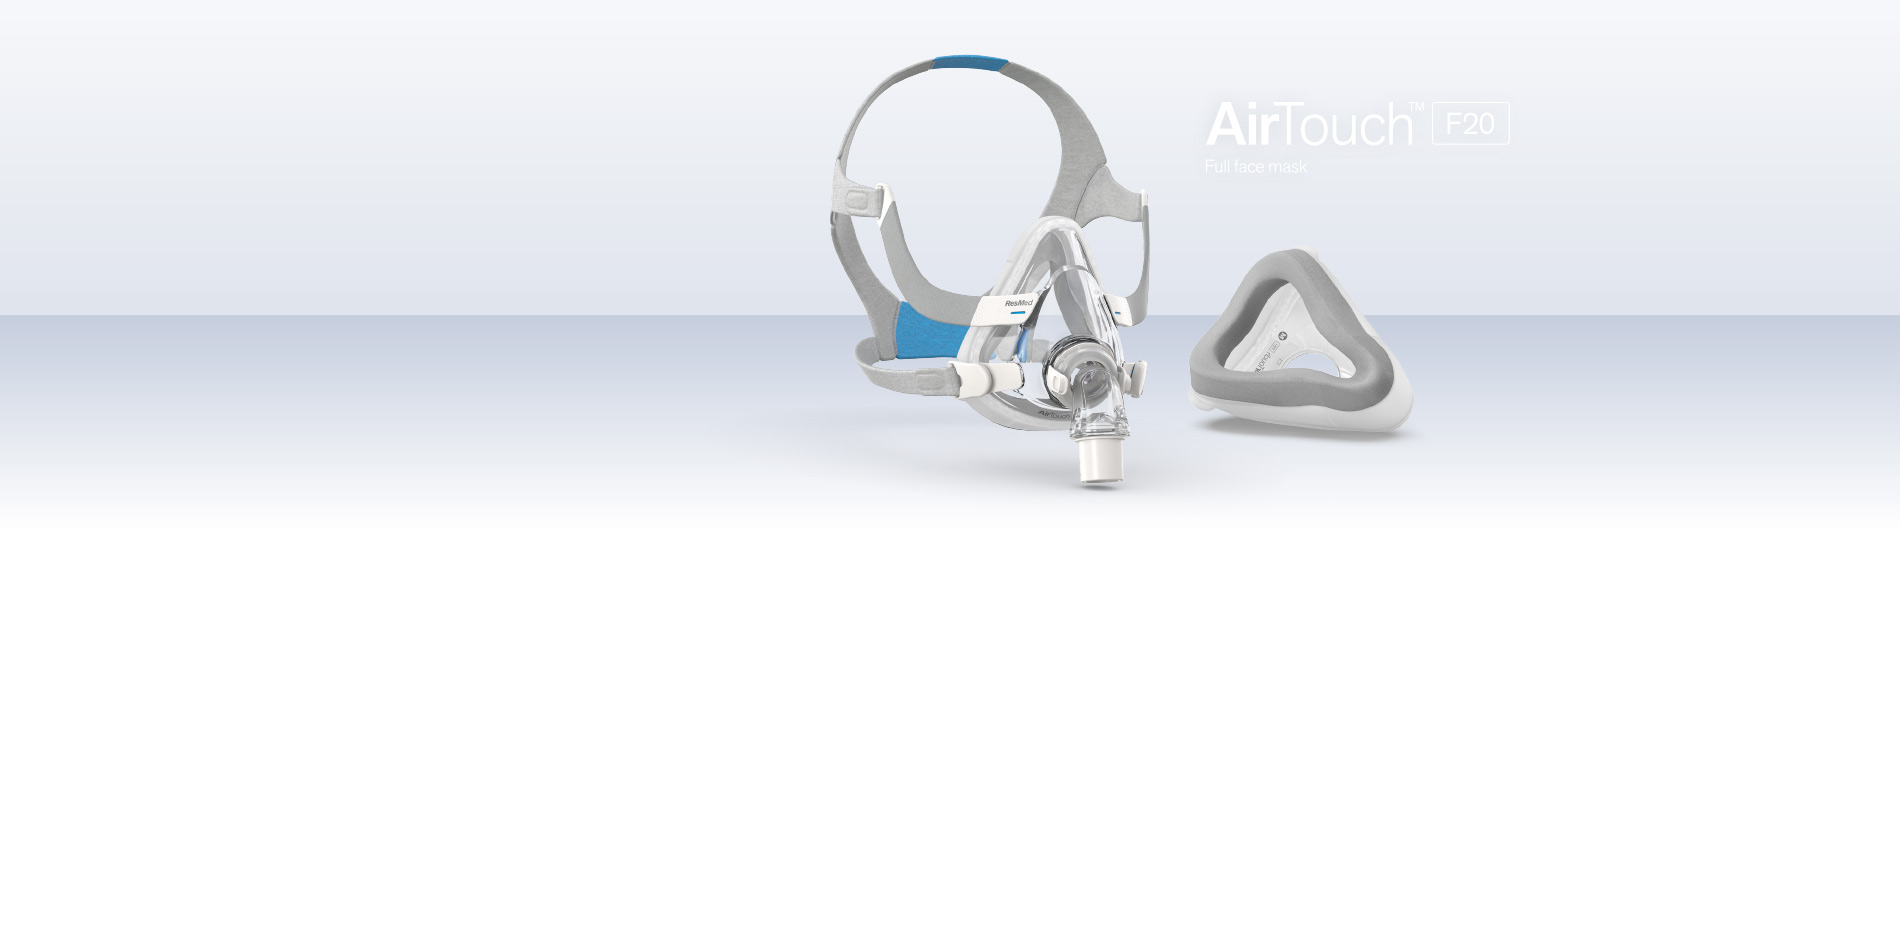 AirTouch F20